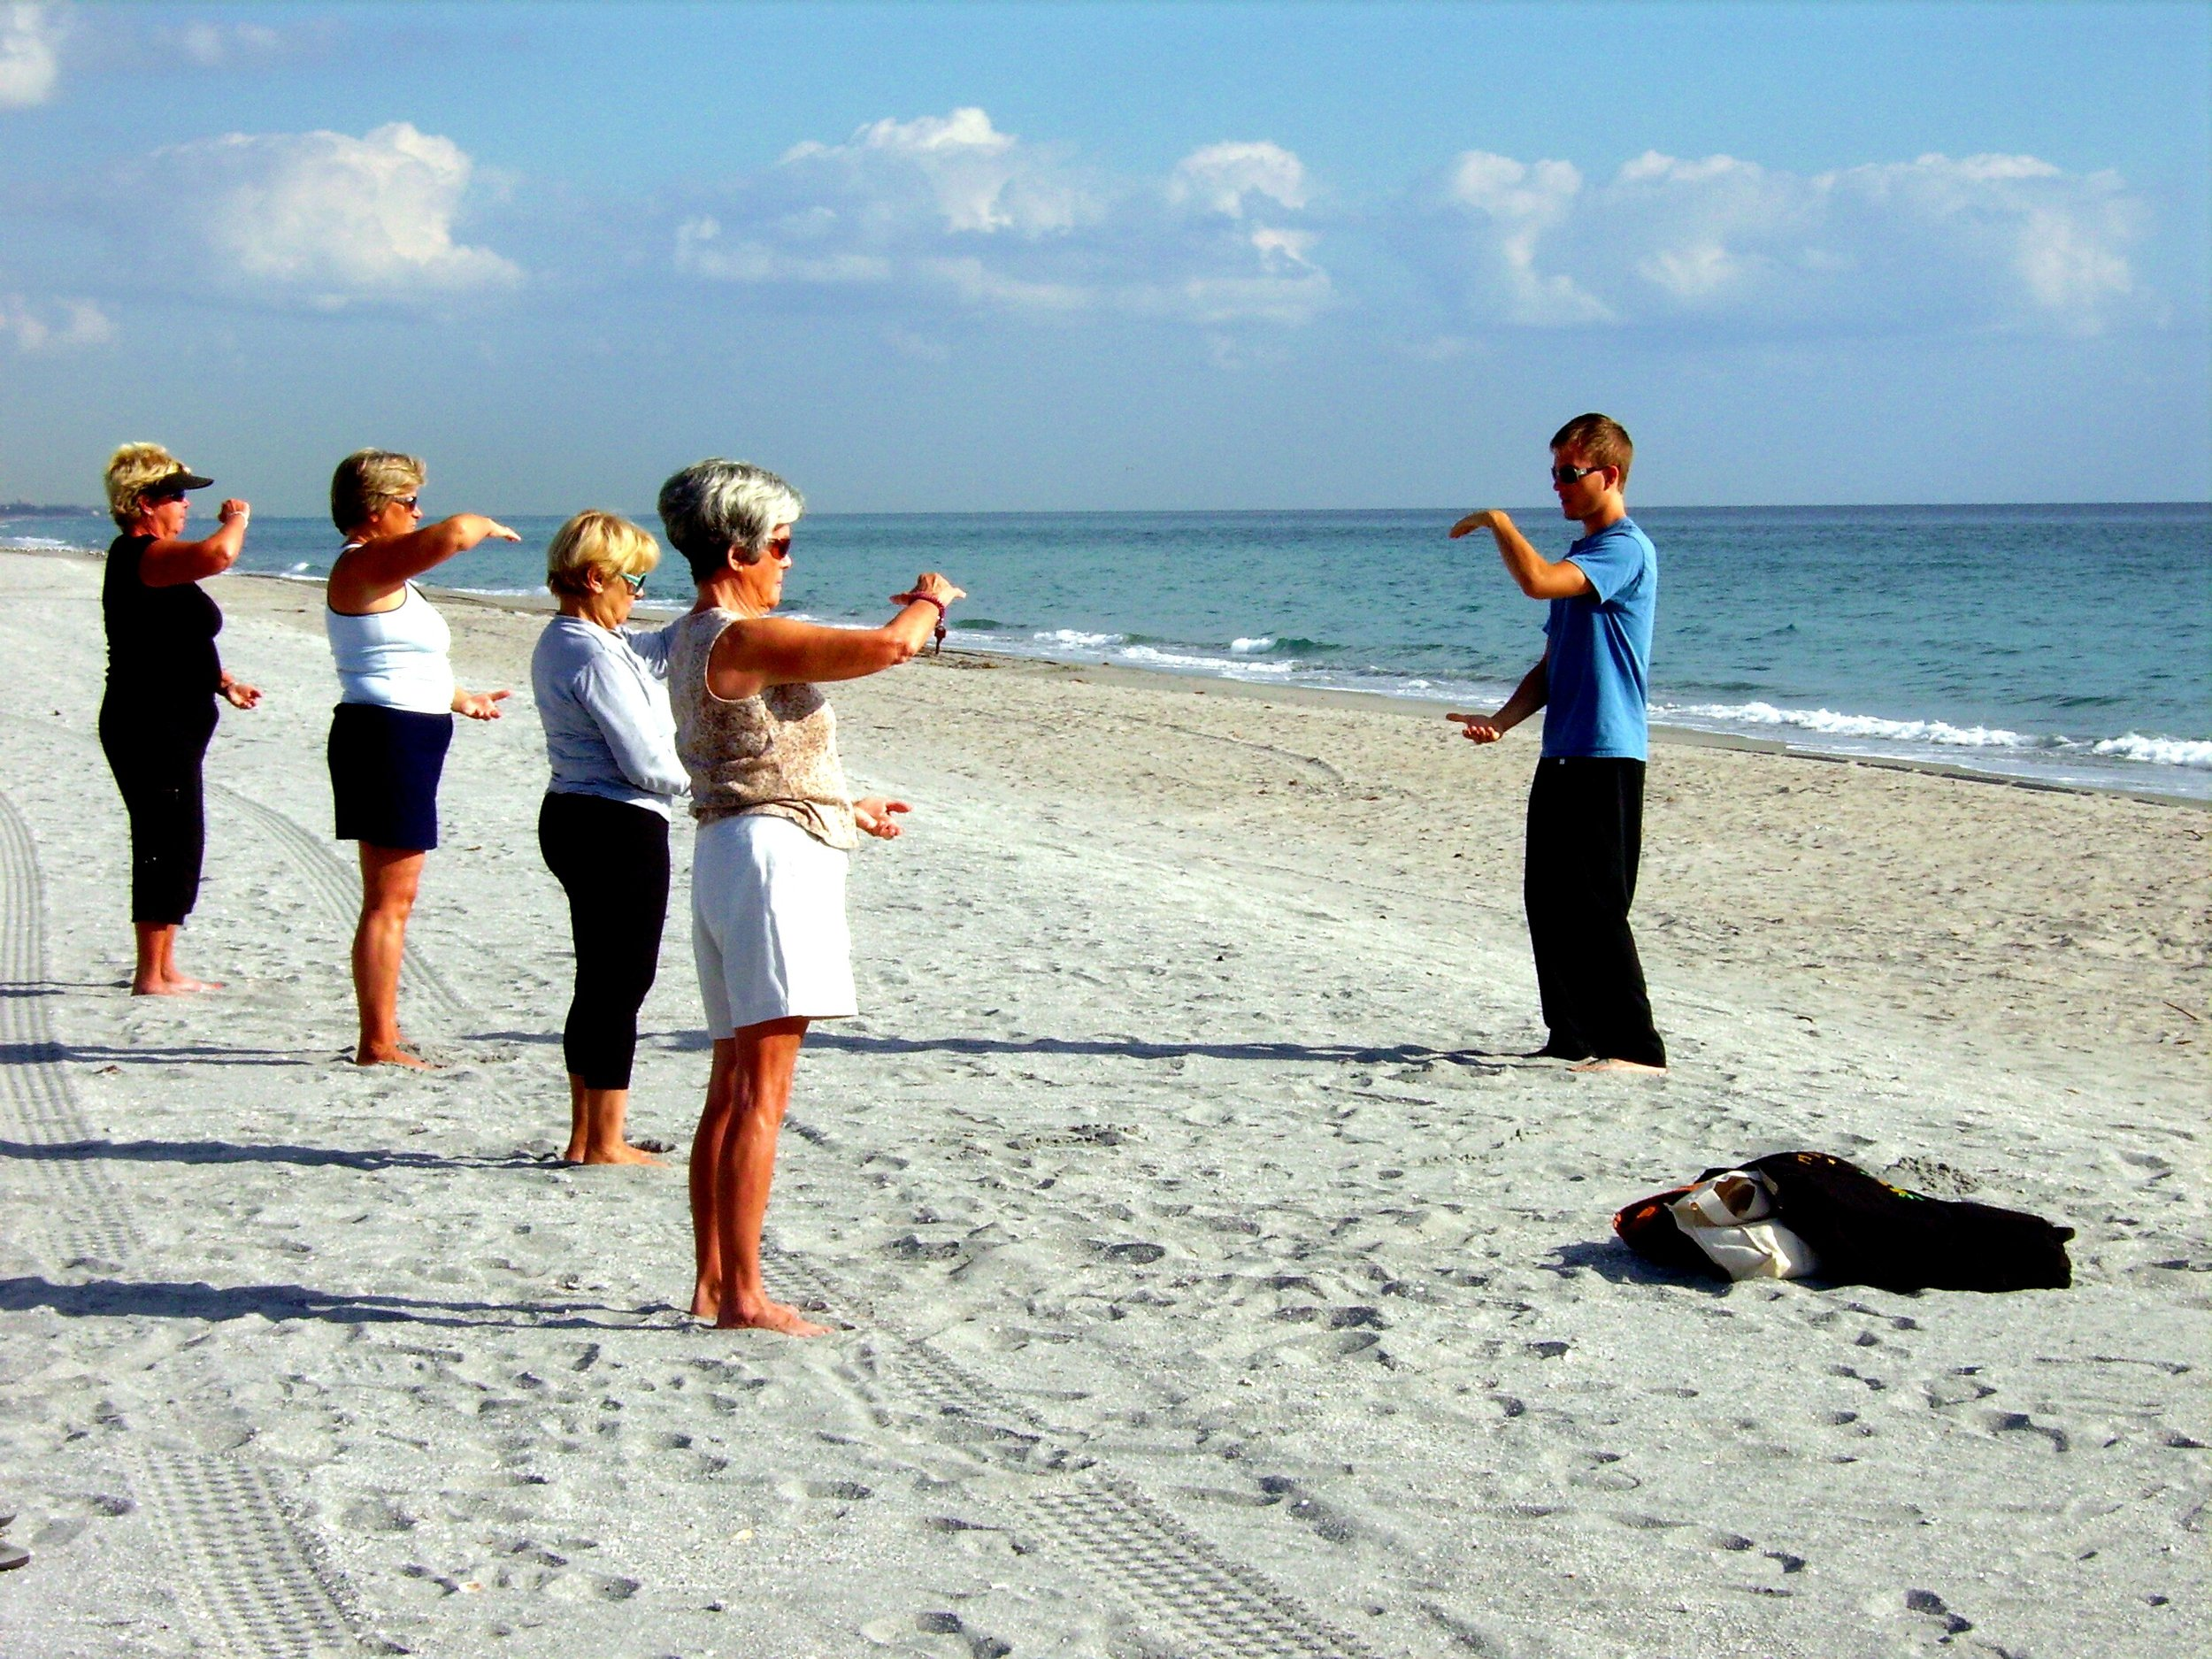 Sifu Falko teaching a class in Florida